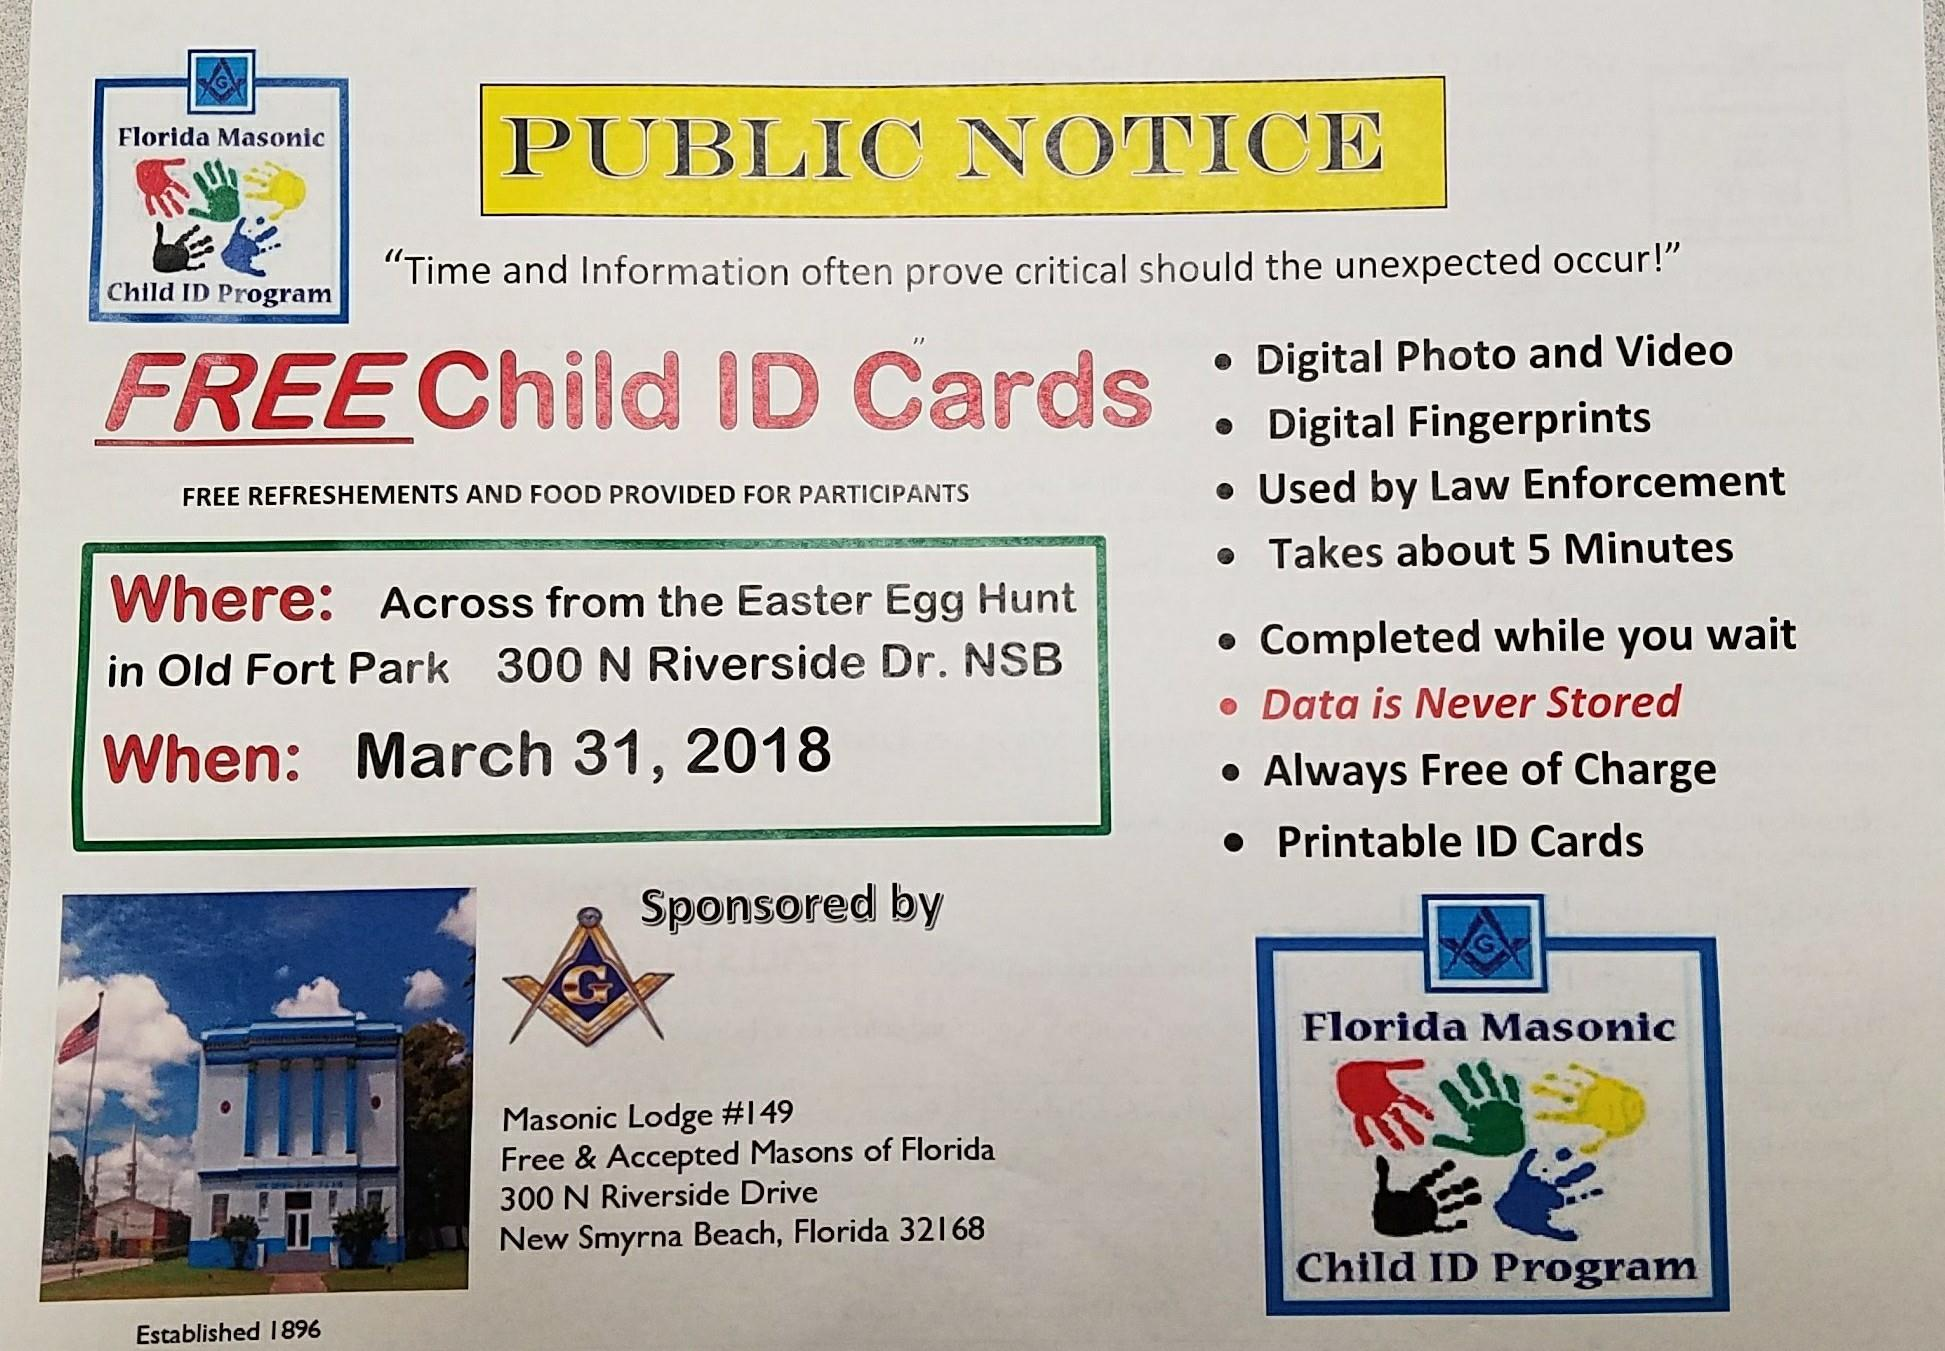 picture about Free Printable Child Identification Card titled No cost kid Identity playing cards celebration inside Refreshing Smyrna Beach front - Volusia